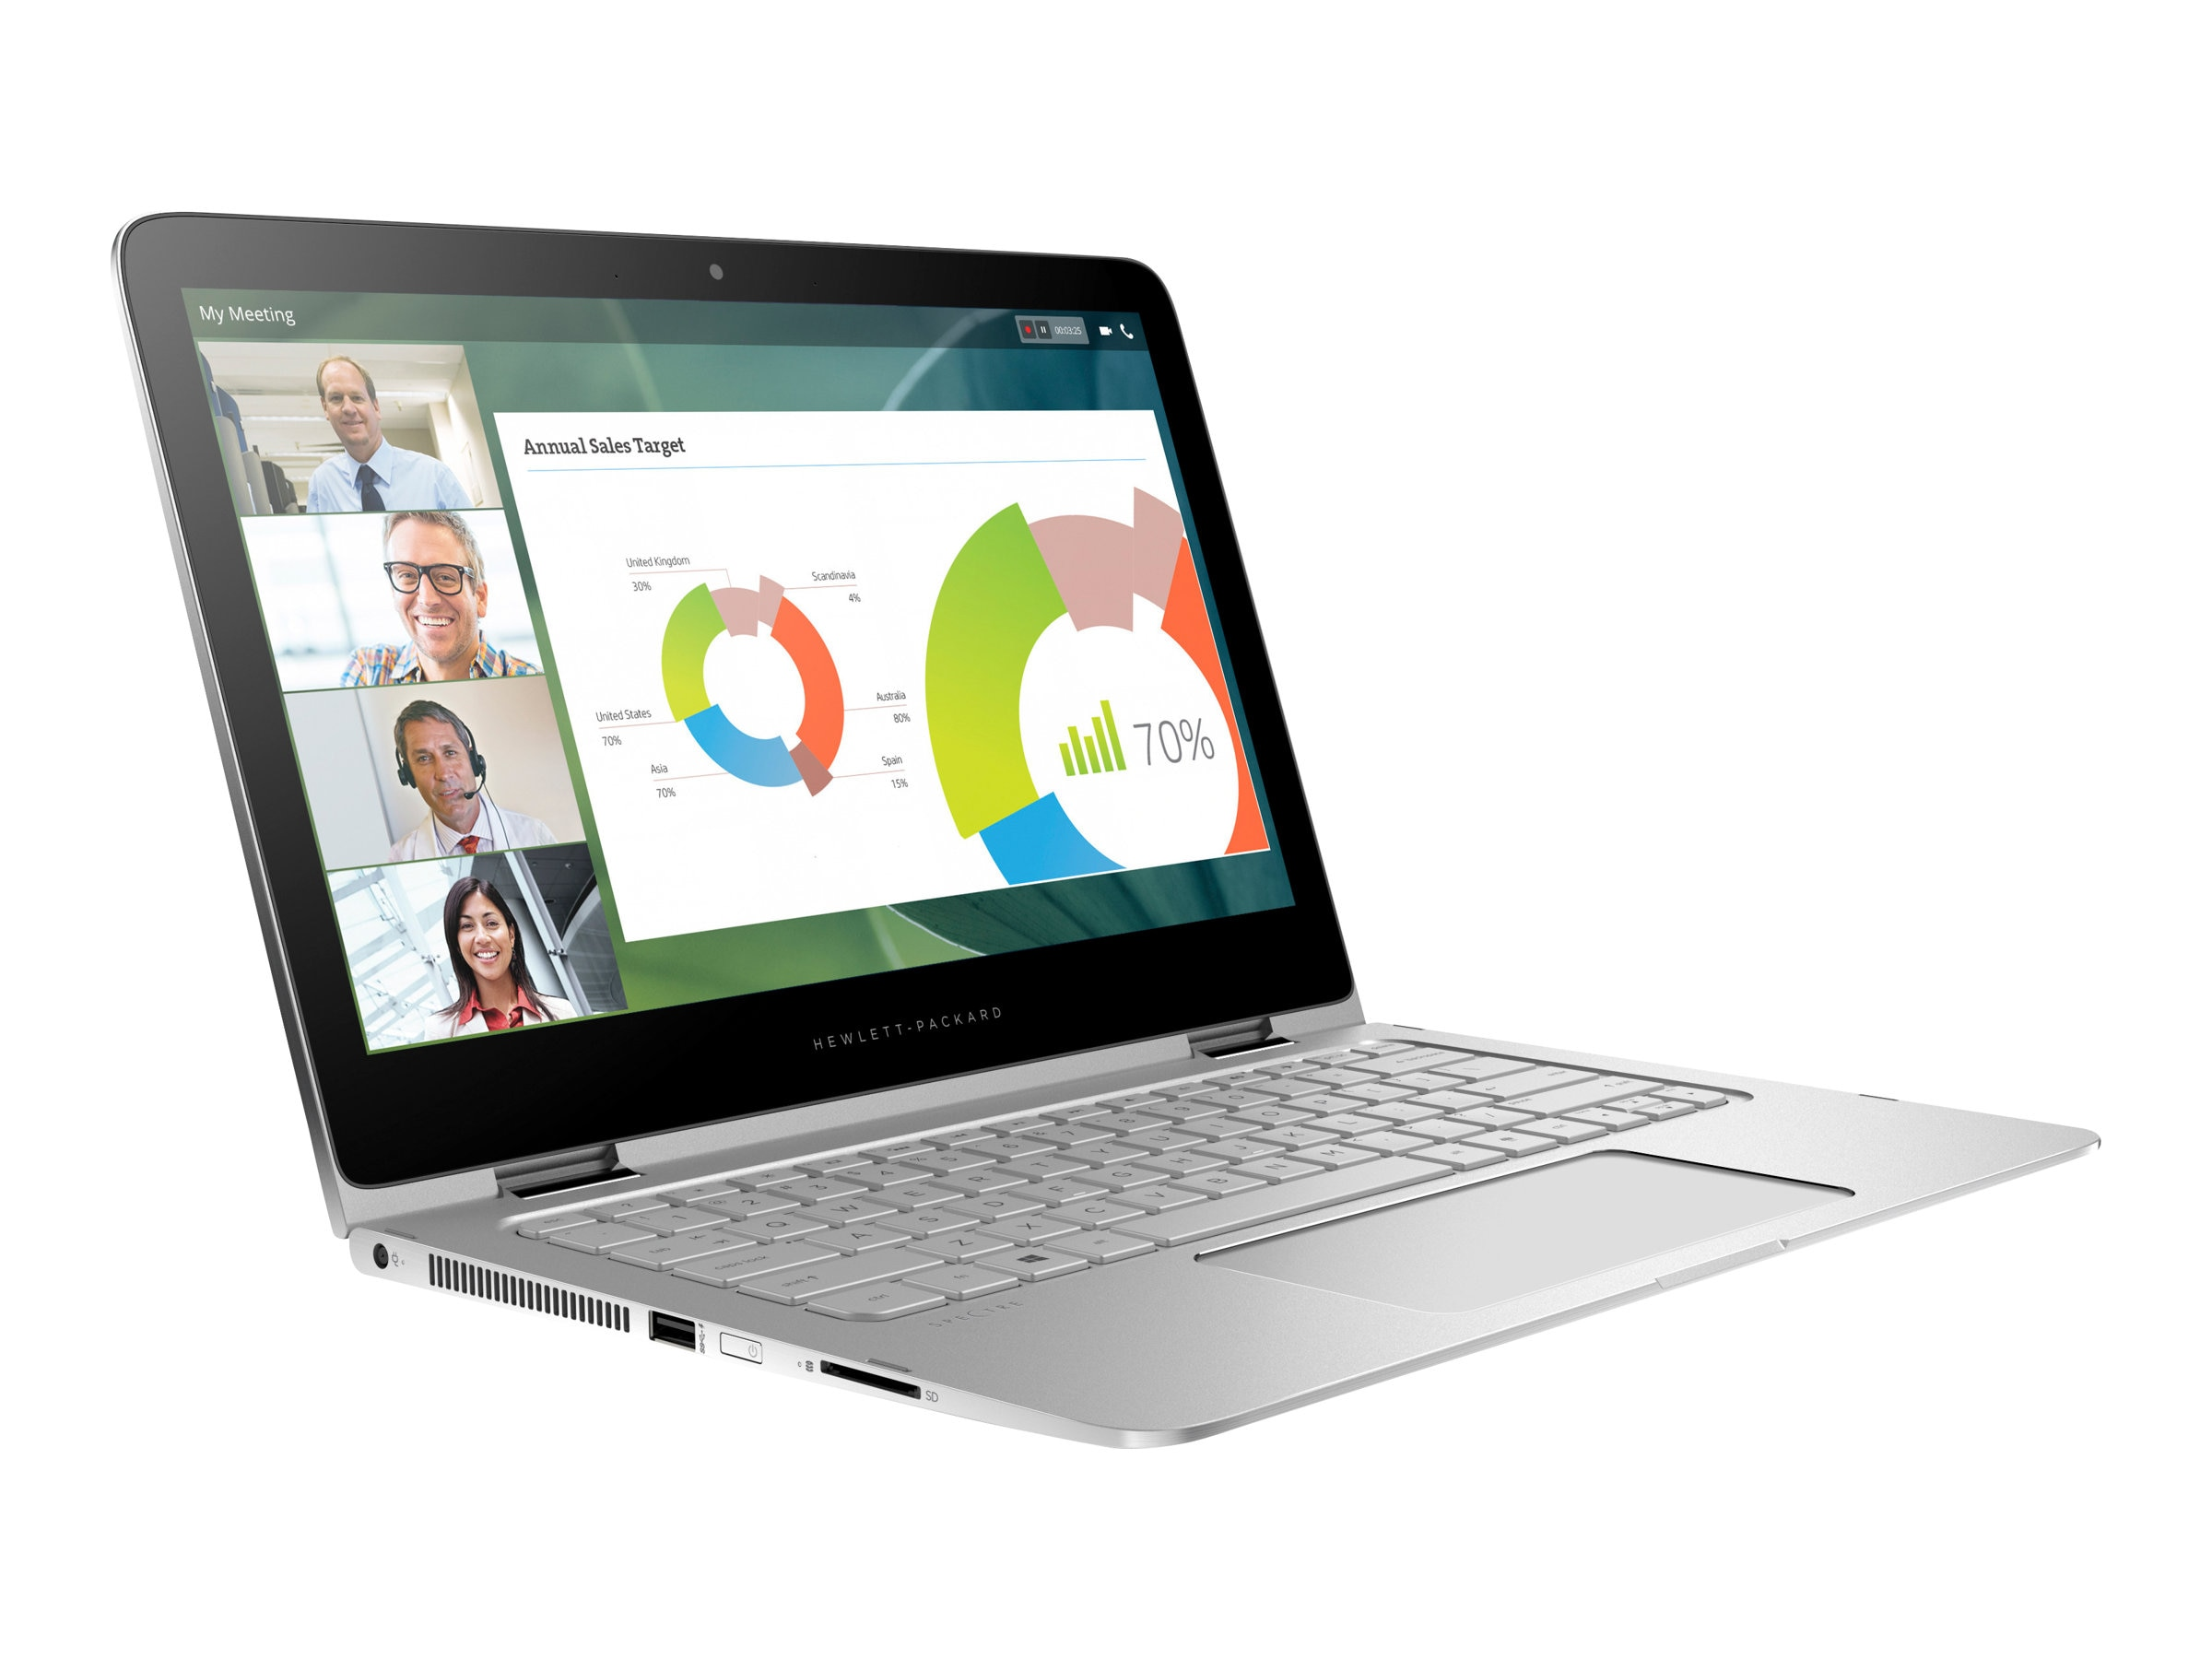 HP Shape the Future Spectre Pro x360 Core i5-6200U 2.3GHz 8GB 128GB 13.3, Y2R23UP#ABA